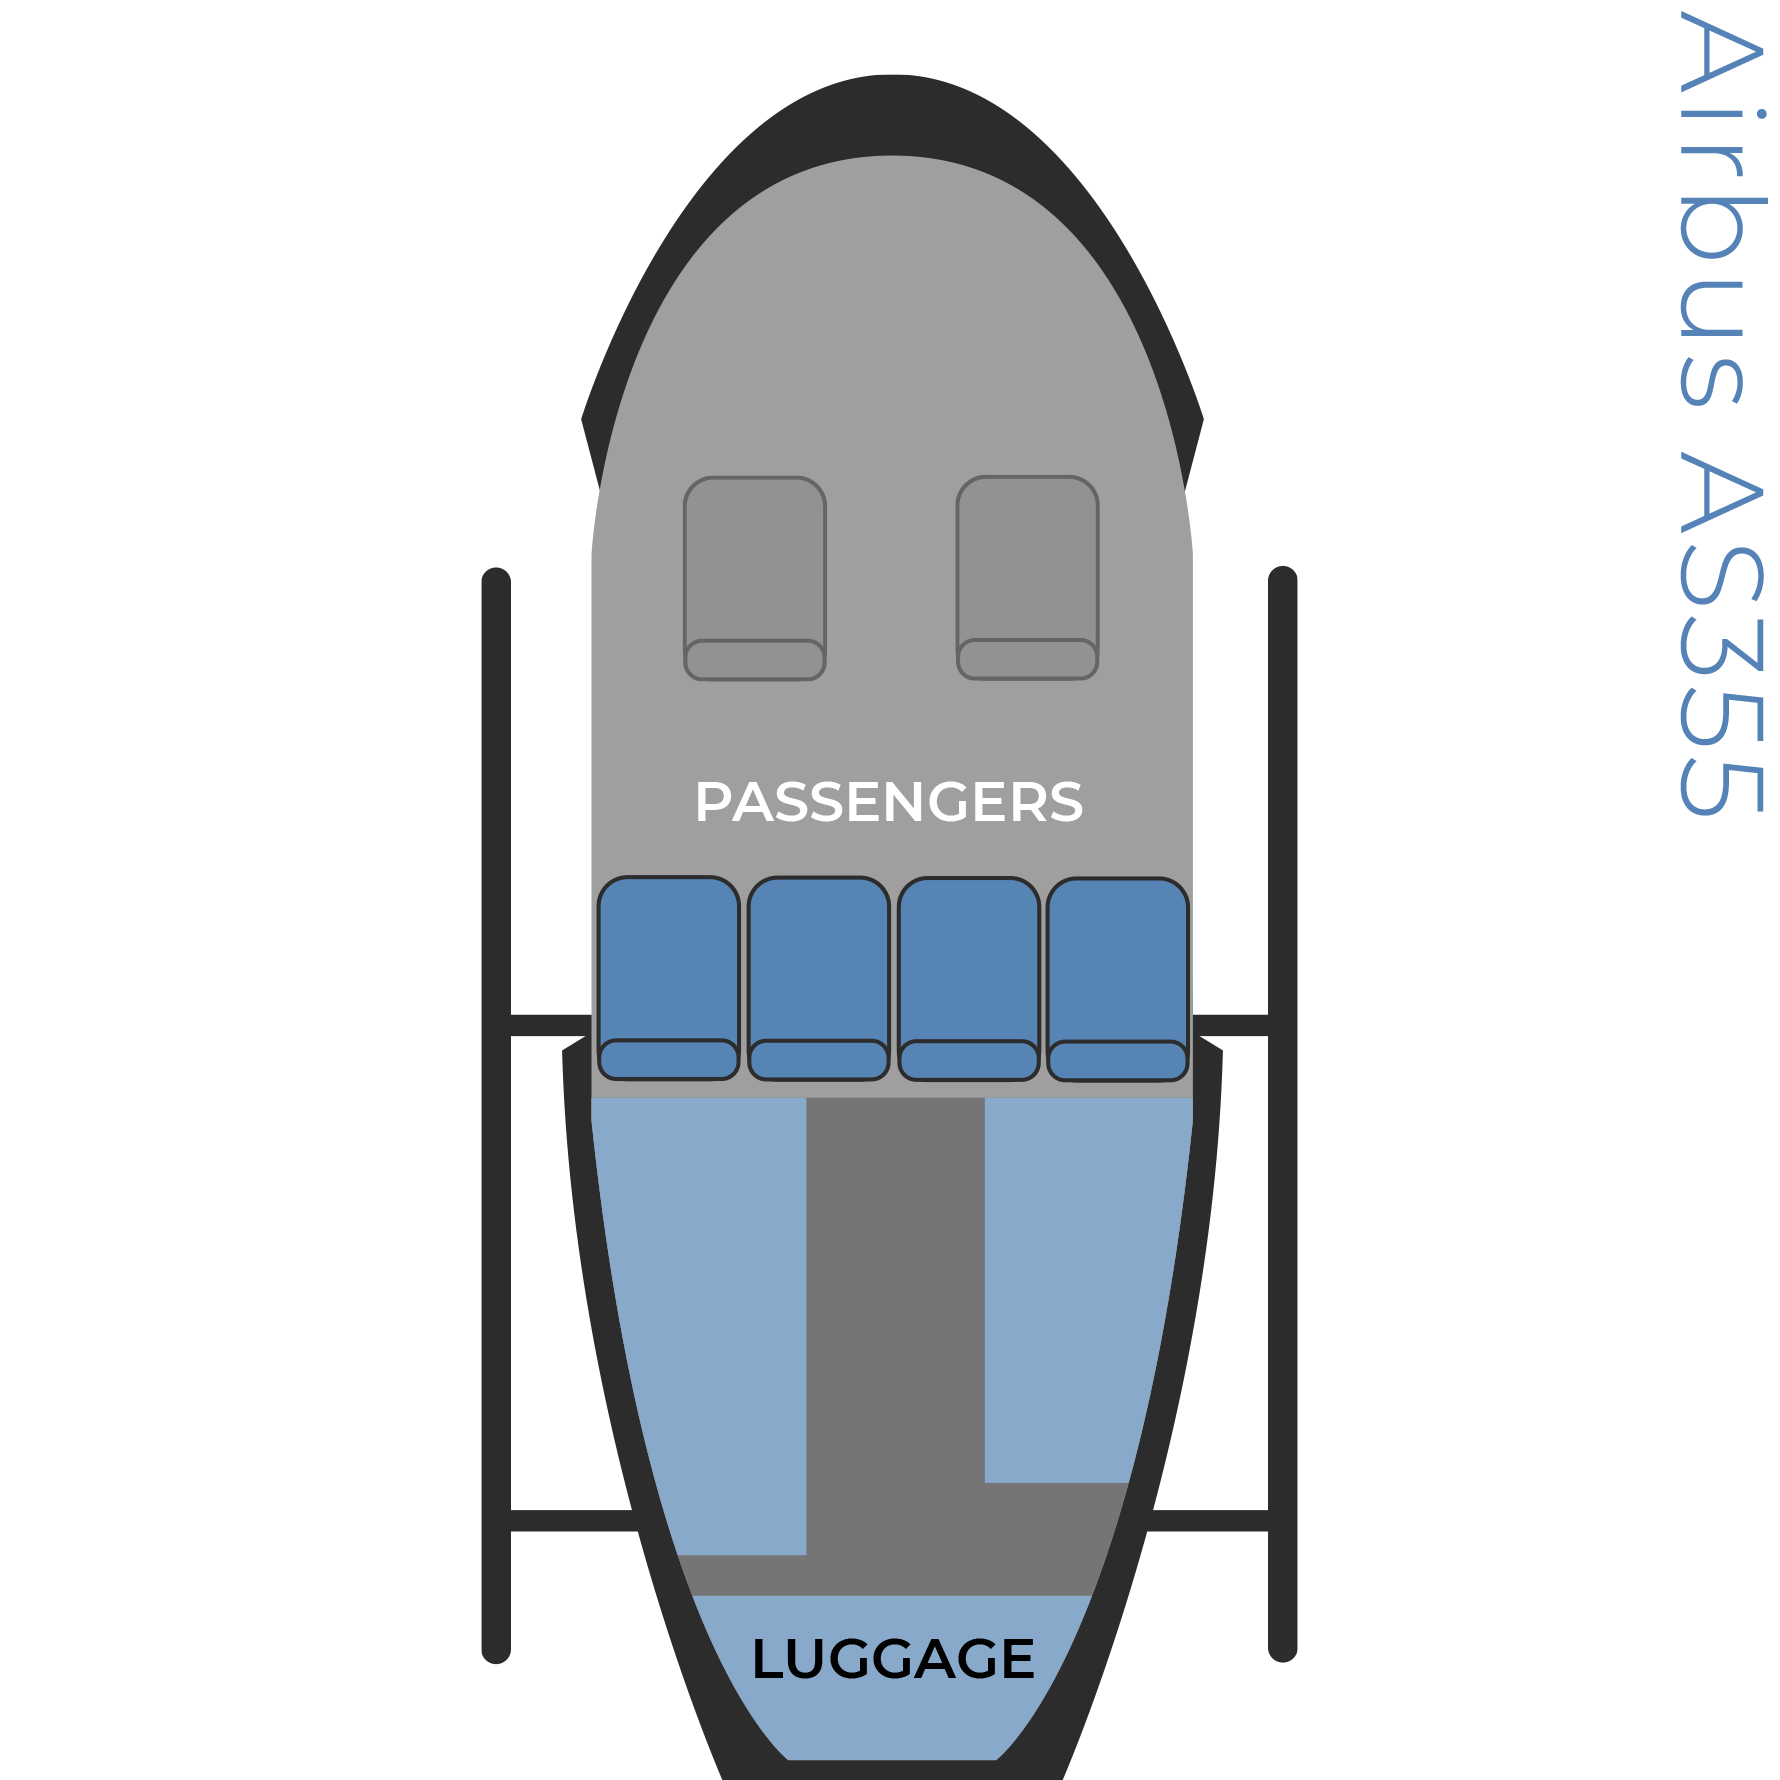 Airbus AS355 seat configuration image